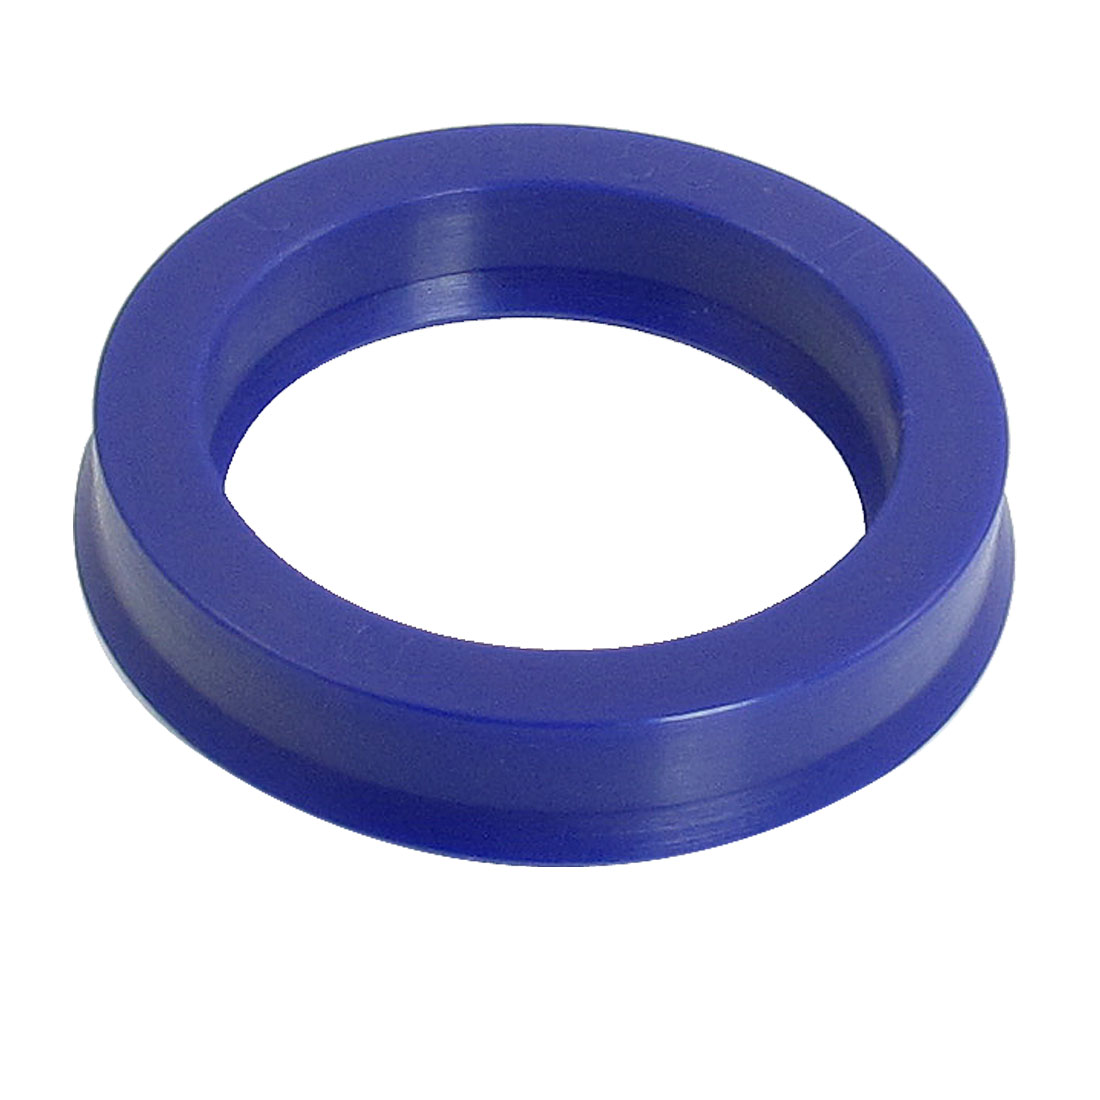 Blue PU 38mm x 50mm x 10mm Double Lip Sealing Cushion Dust Seal Ring